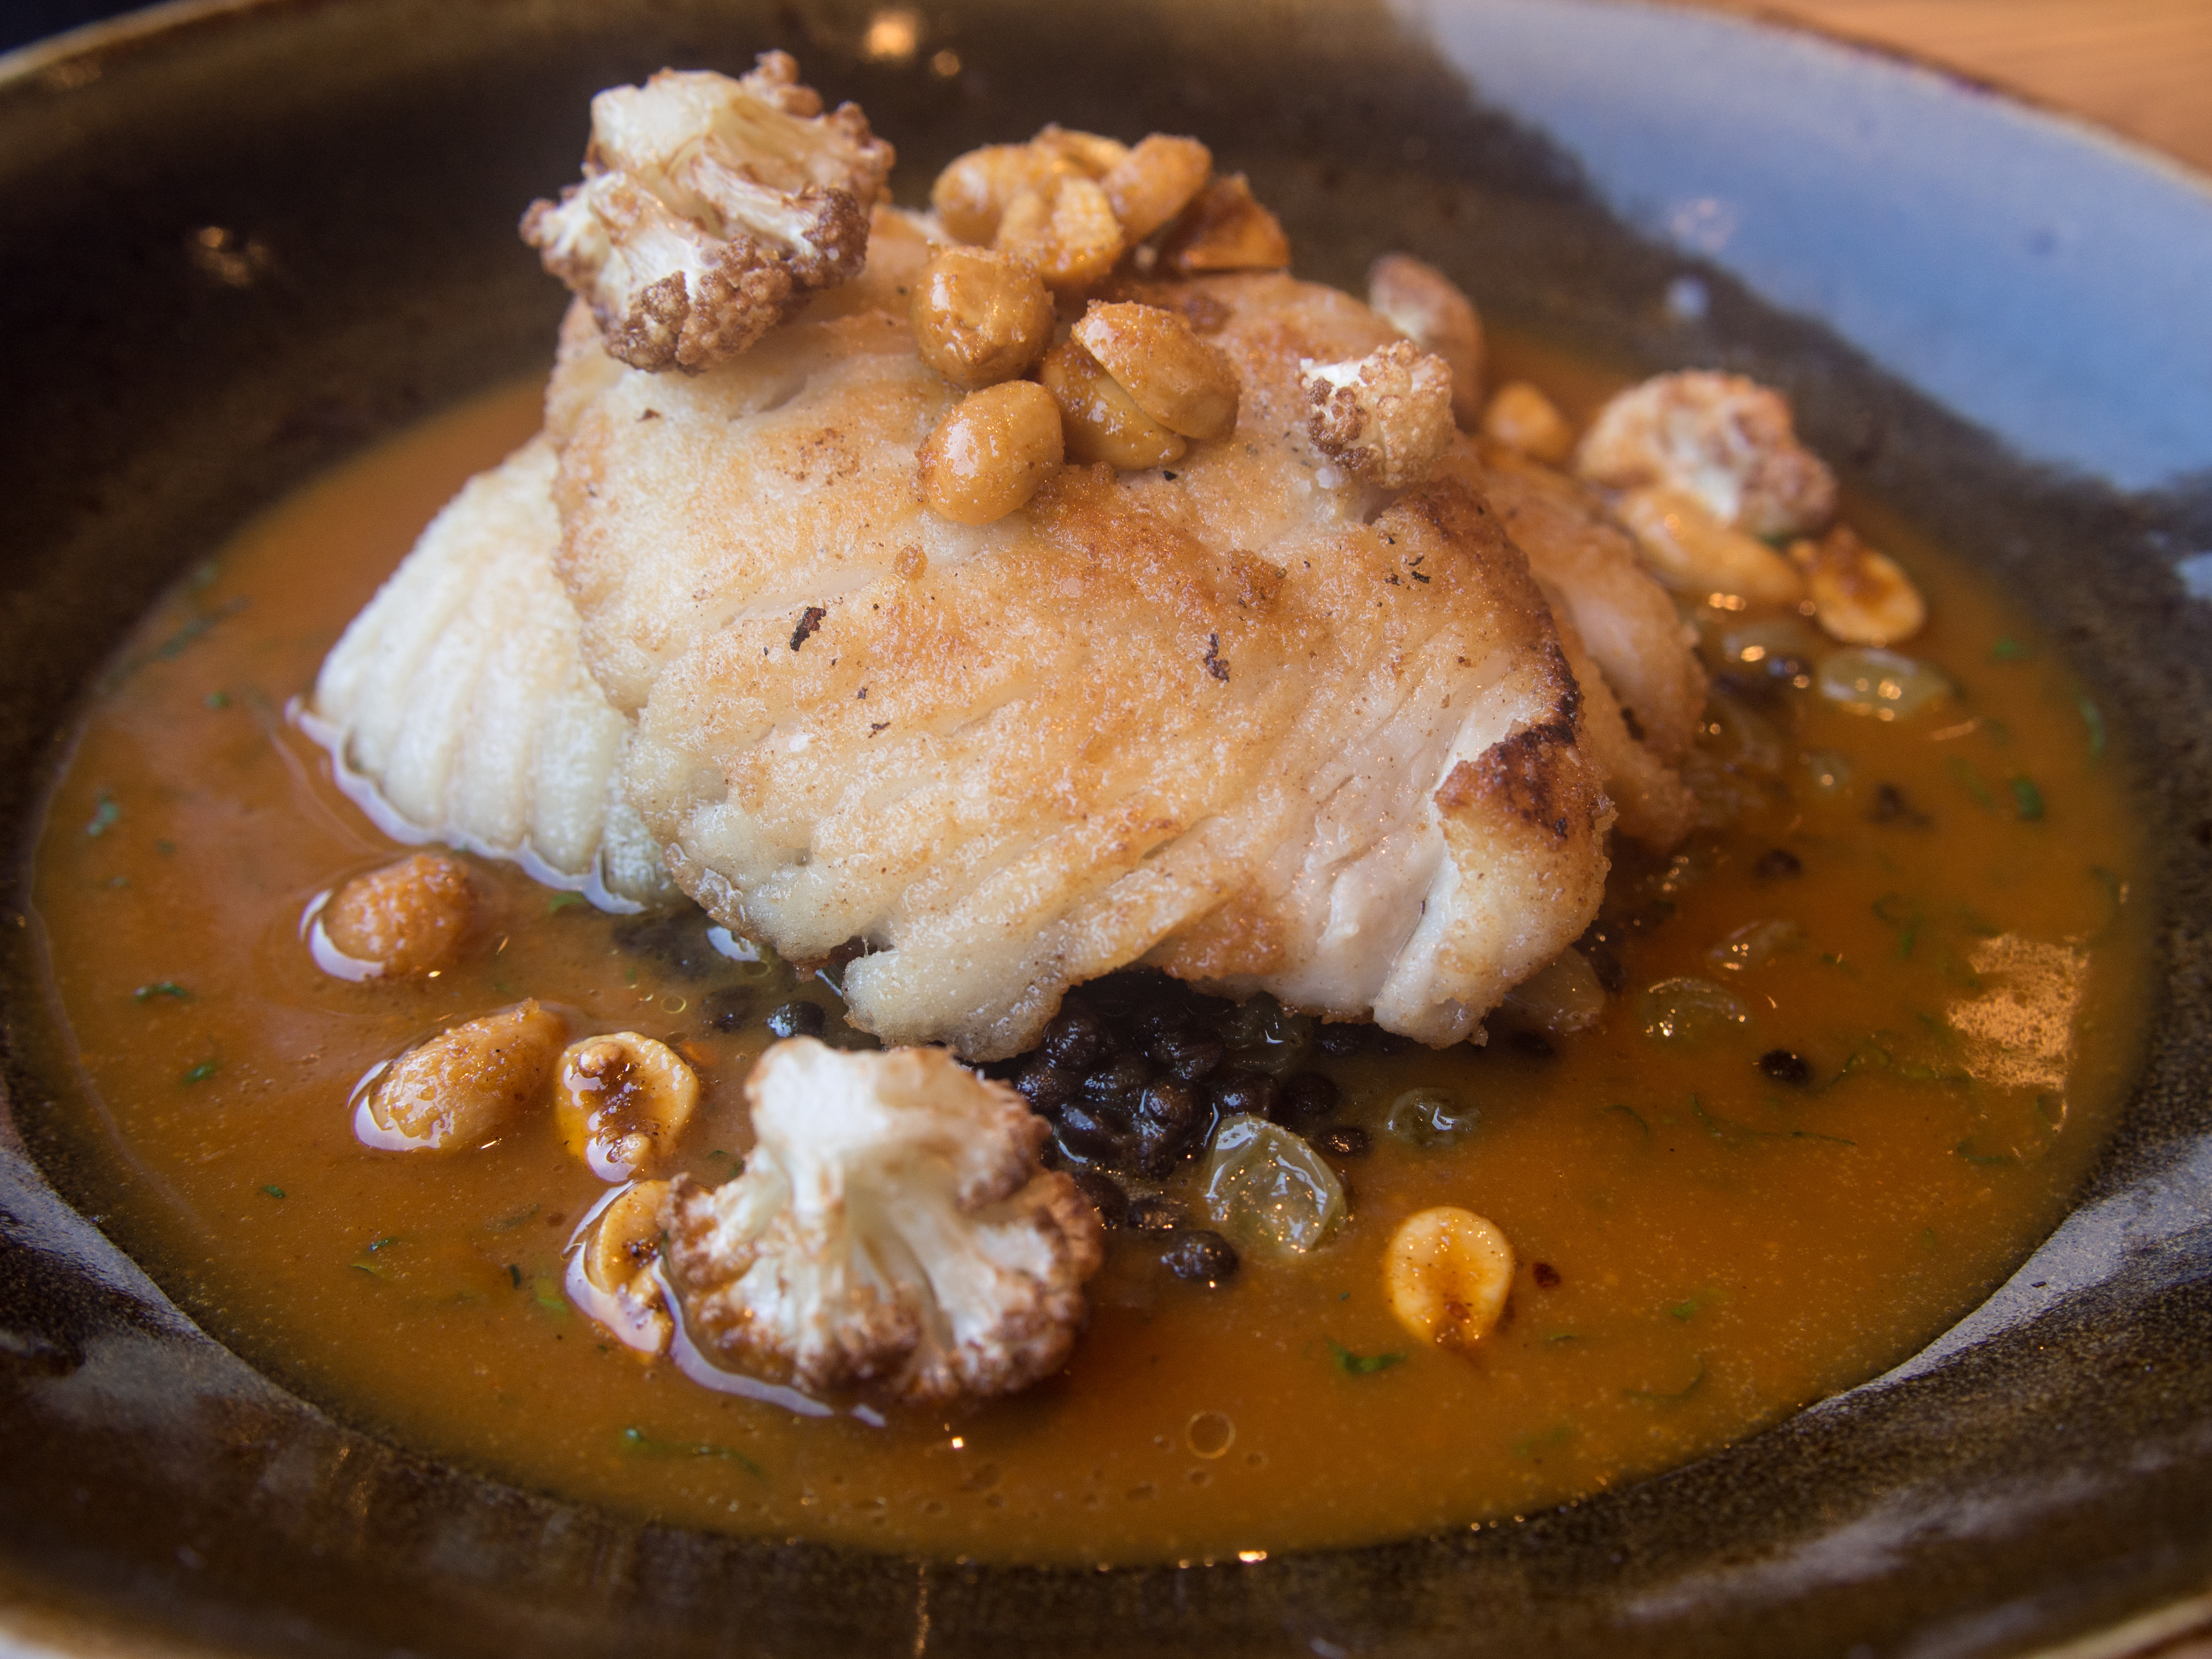 skate wing with lentils, cauliflower, peanuts, and curry